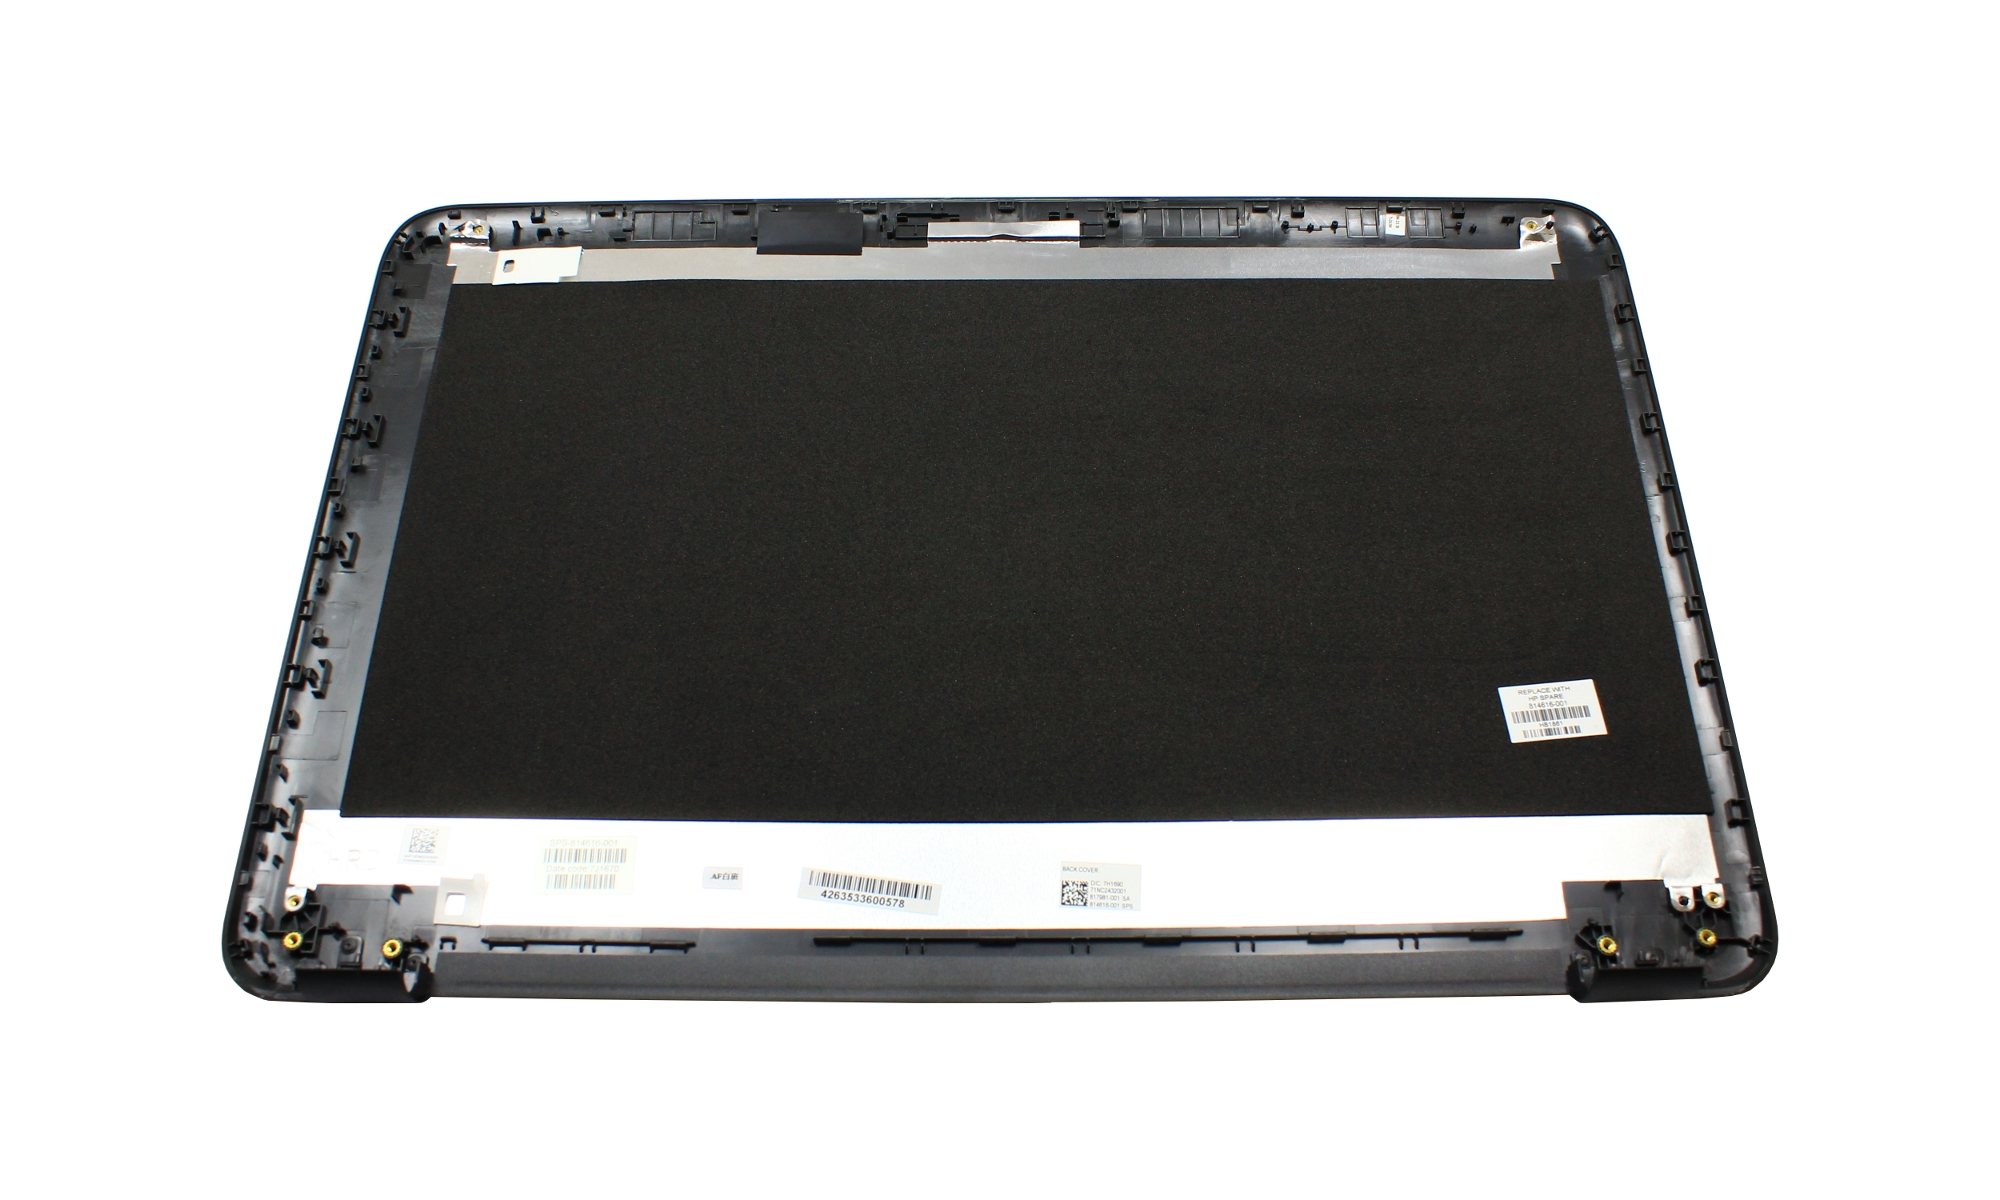 Capac display HP 255 G4